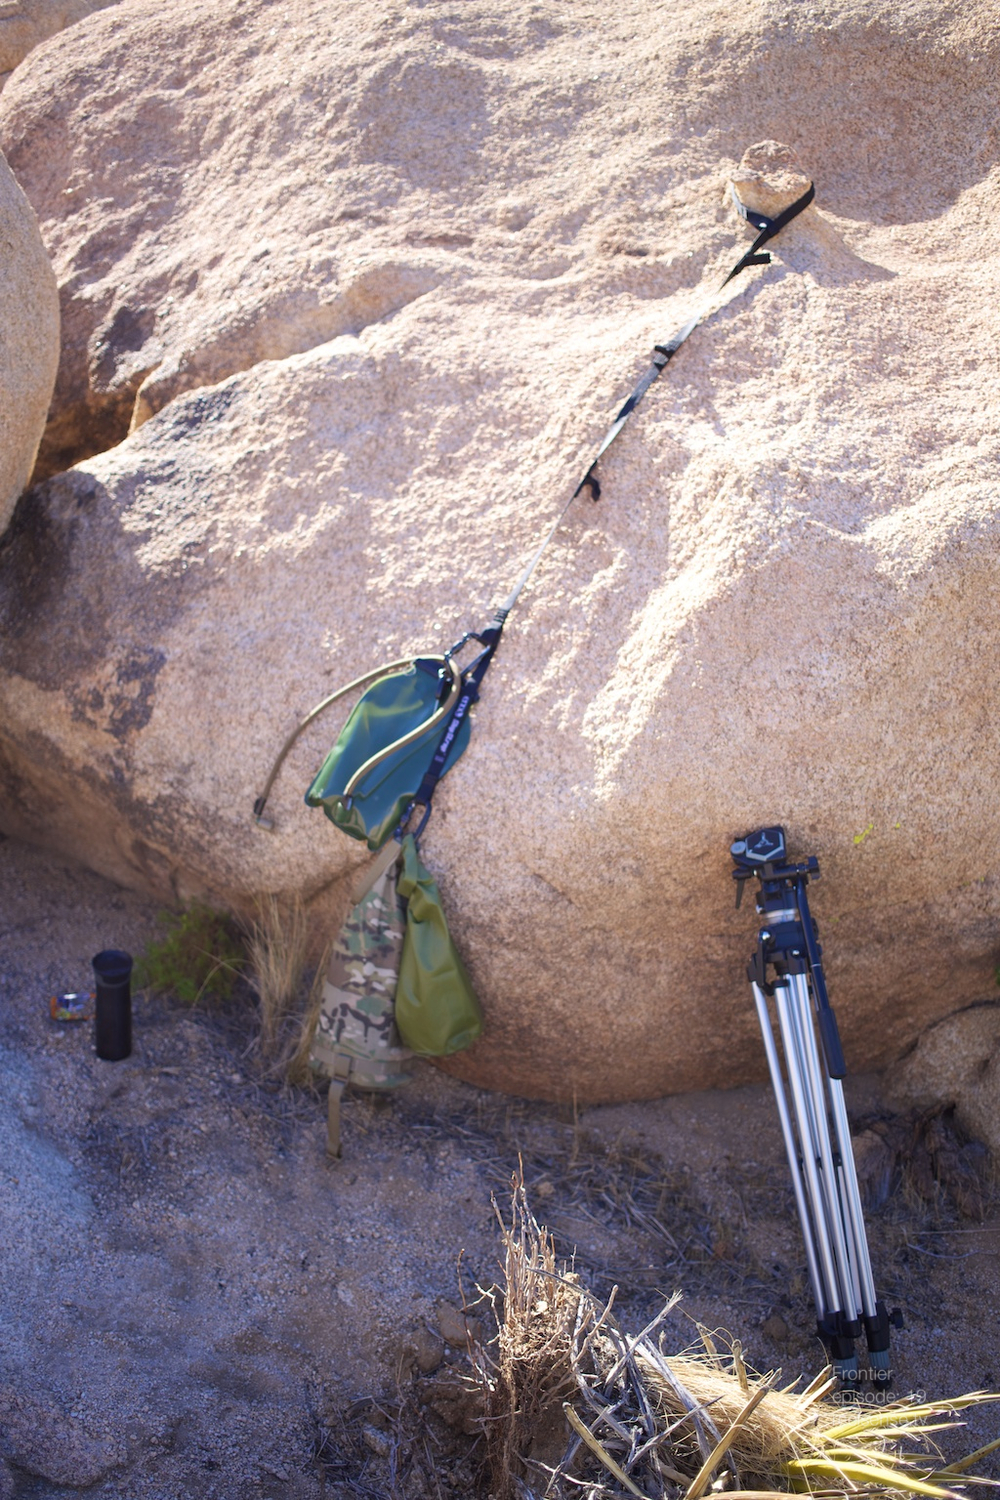 Joshua Tree - Gear and tripod setup in camp